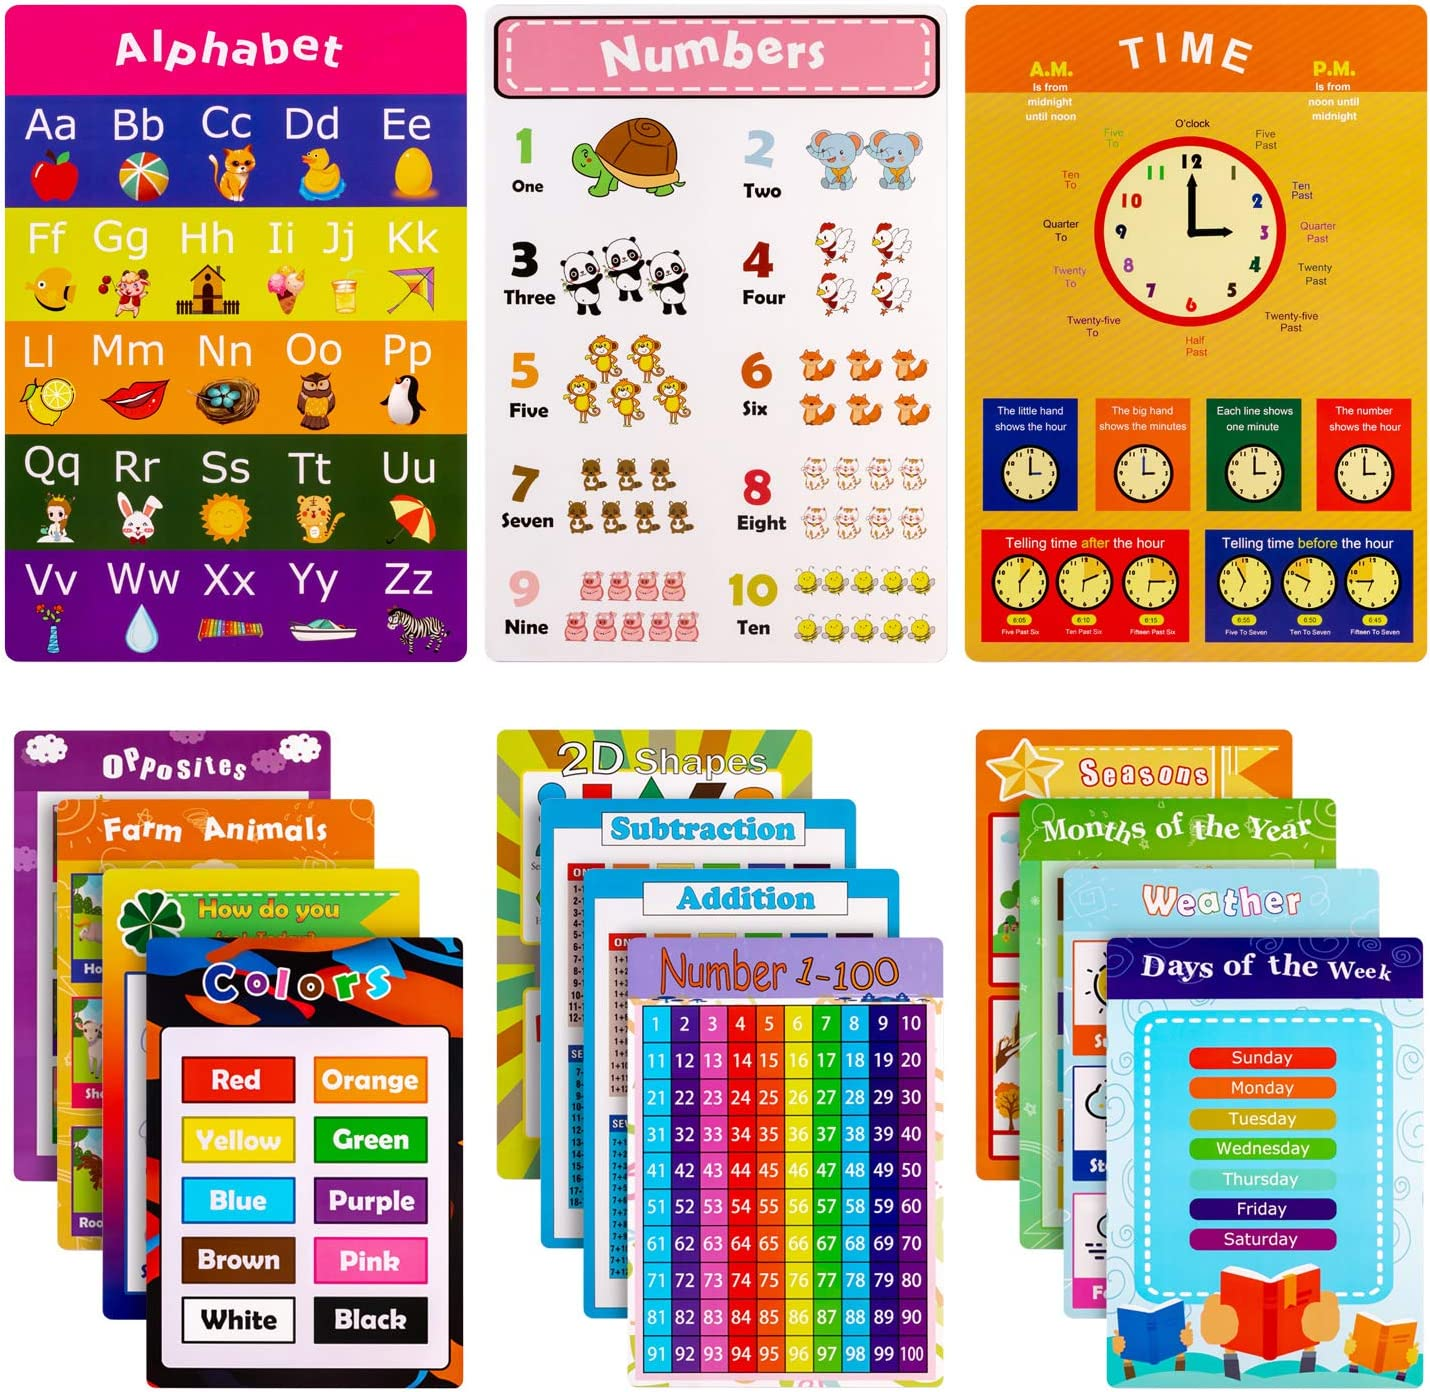 15 Pieces Educational Posters for Kids Preschool Learning with Glue Point Dot for Nursery Homeschool Kindergarten Classroom - Numbers Alphabet Days Time Colors and More, 16 x 11 Inch